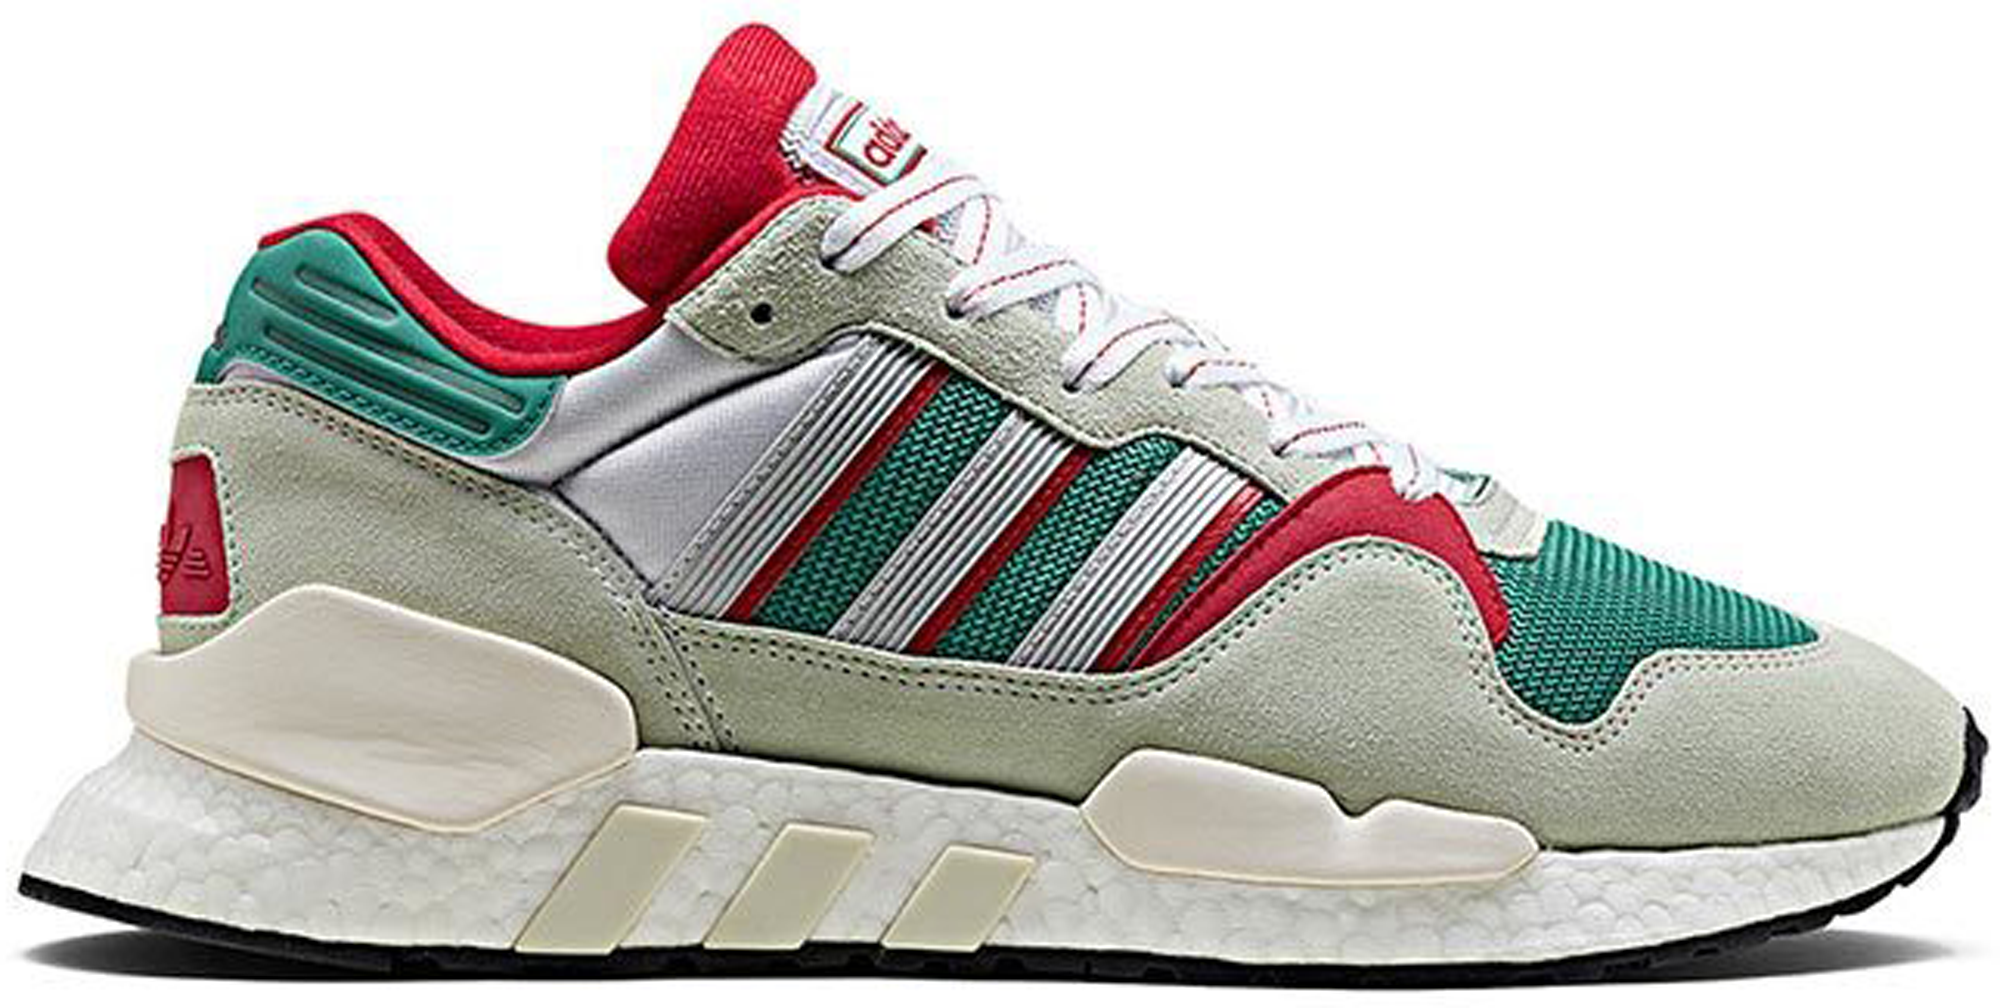 06fdce403 ... uk adidas zx 930 x eqt never made pack 13c5b 97aa1